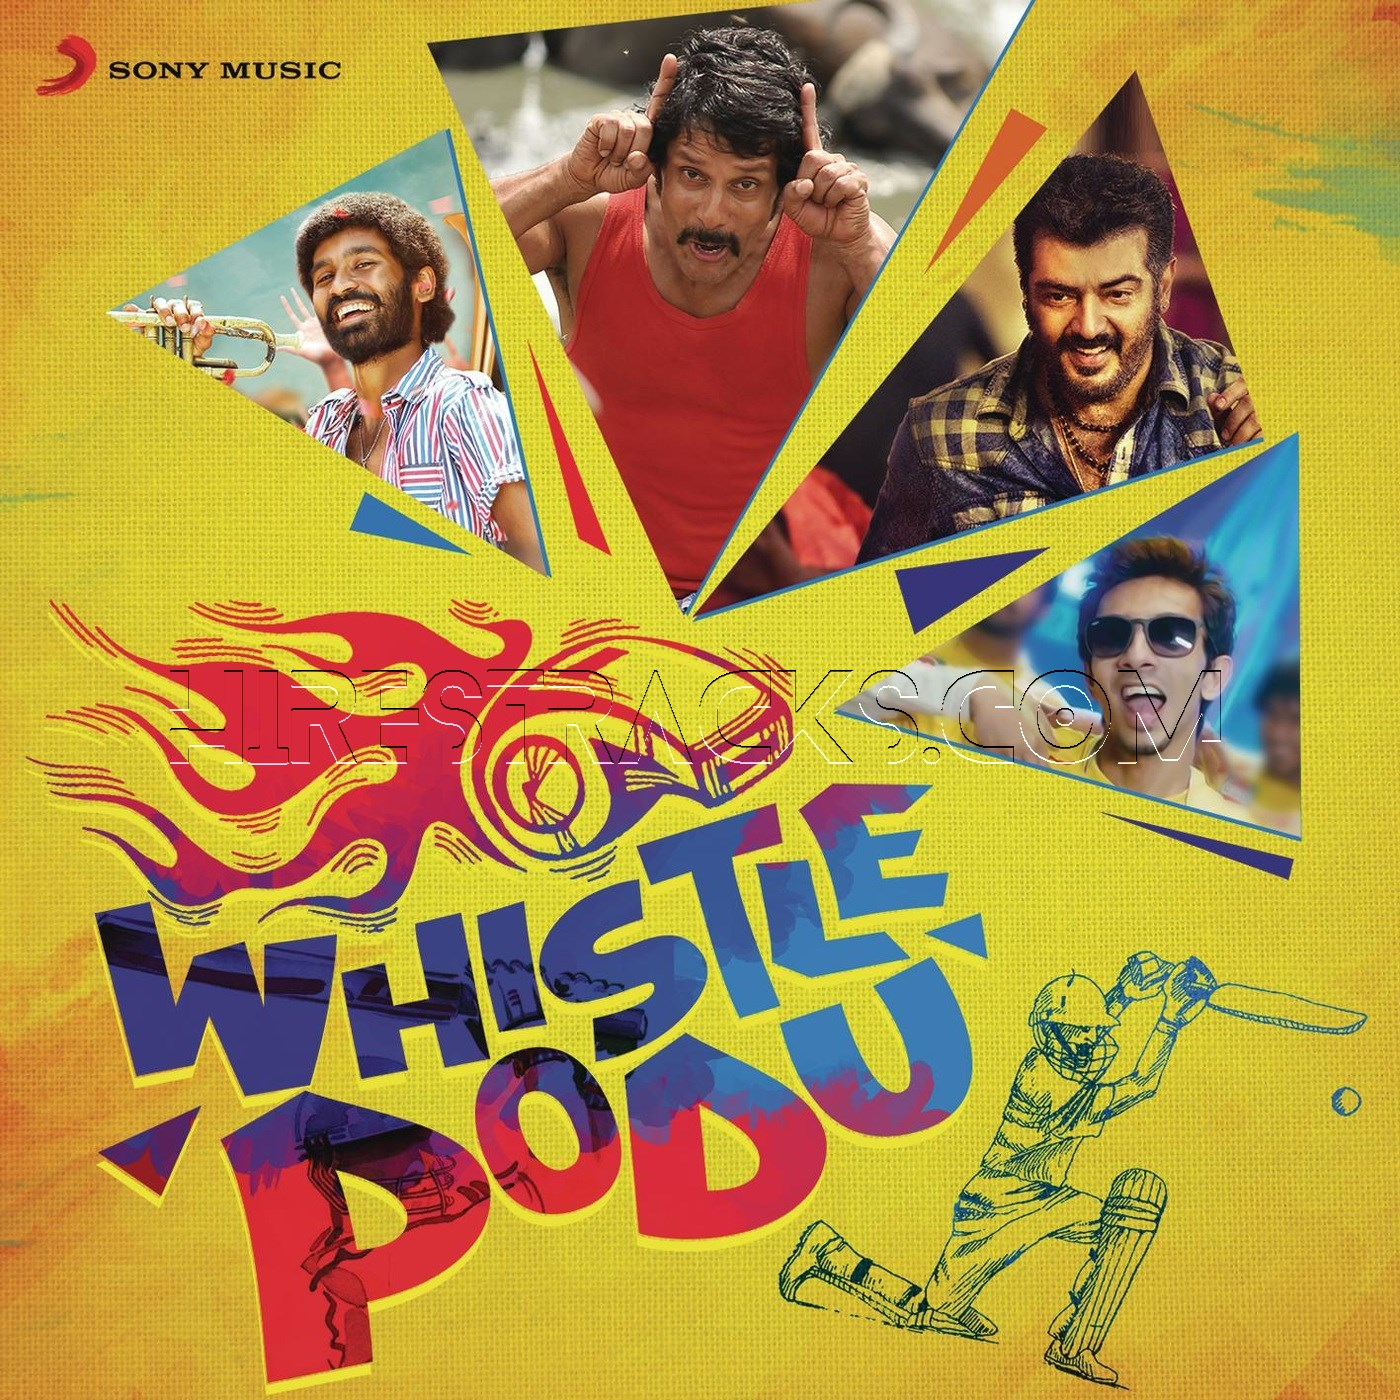 Whistle Podu (2015) [1-3 CDs]